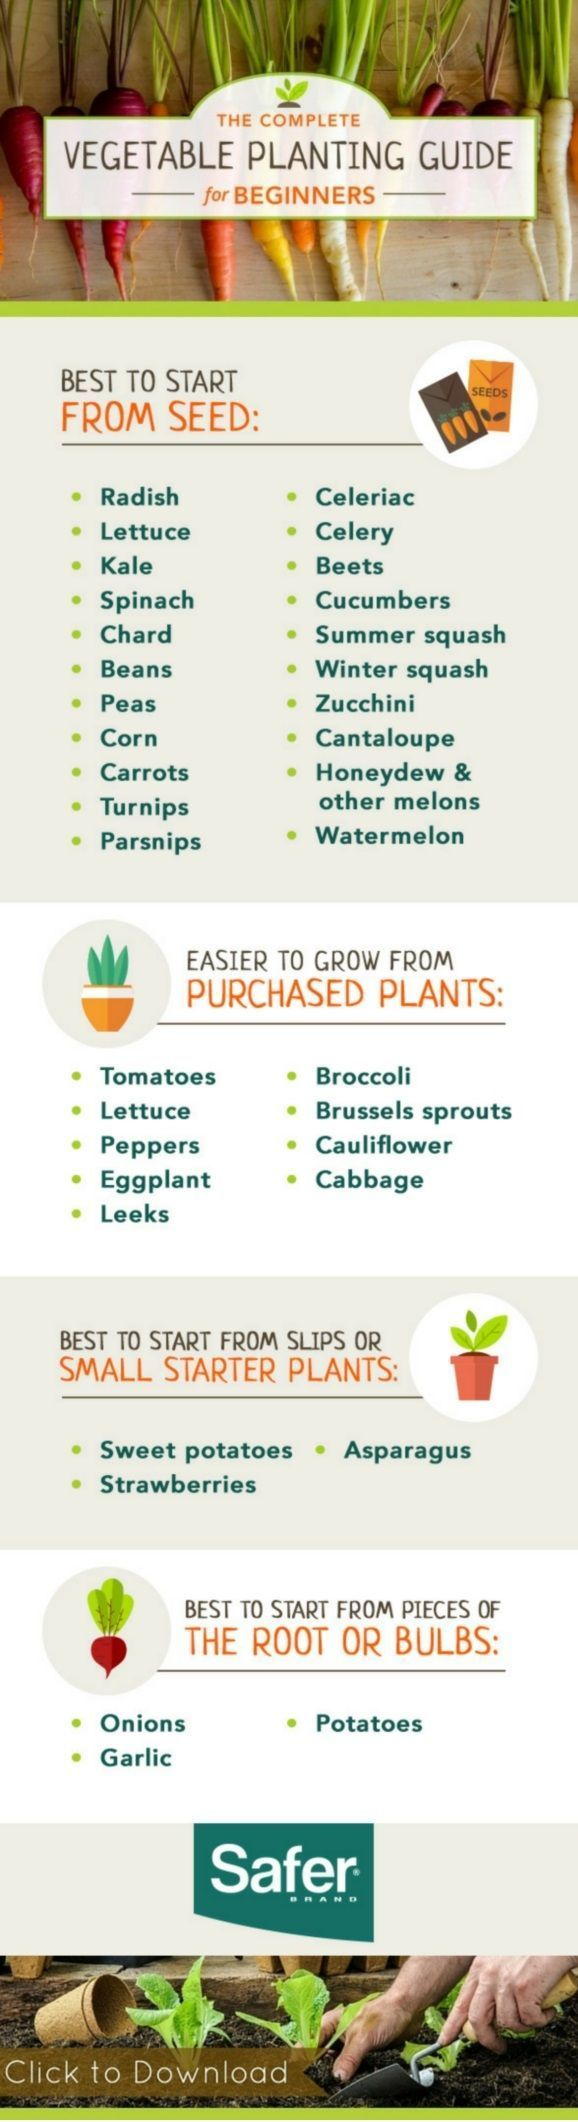 25 best ideas about container gardening on pinterest growing vegetables growing herbs in - Container gardening for beginners practical tips ...